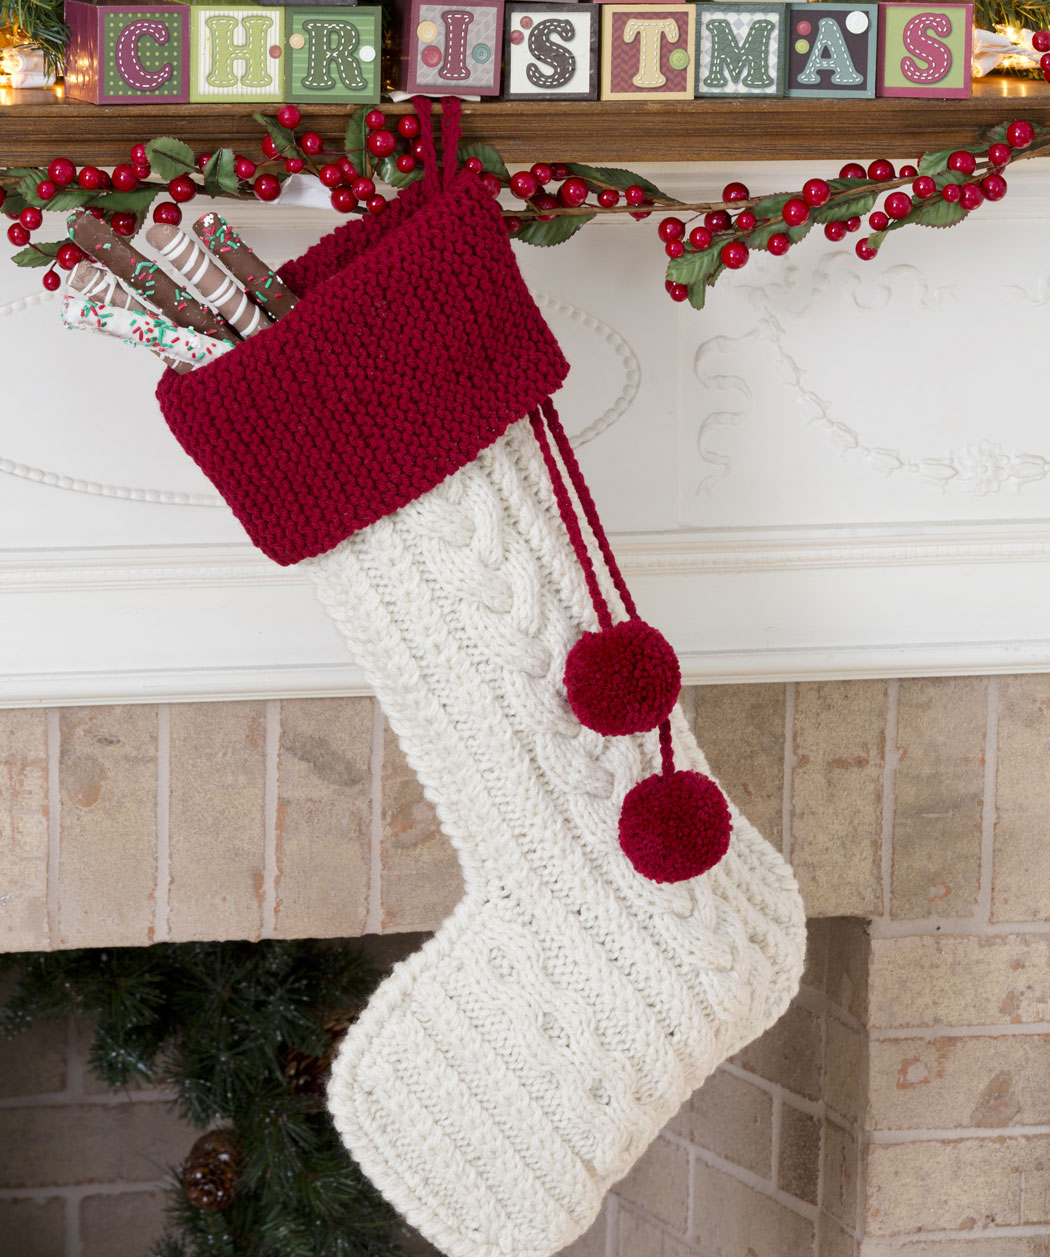 Adorable knit christmas stockings with multicolorful christmas stocking and fireplace at chistmas day interior design